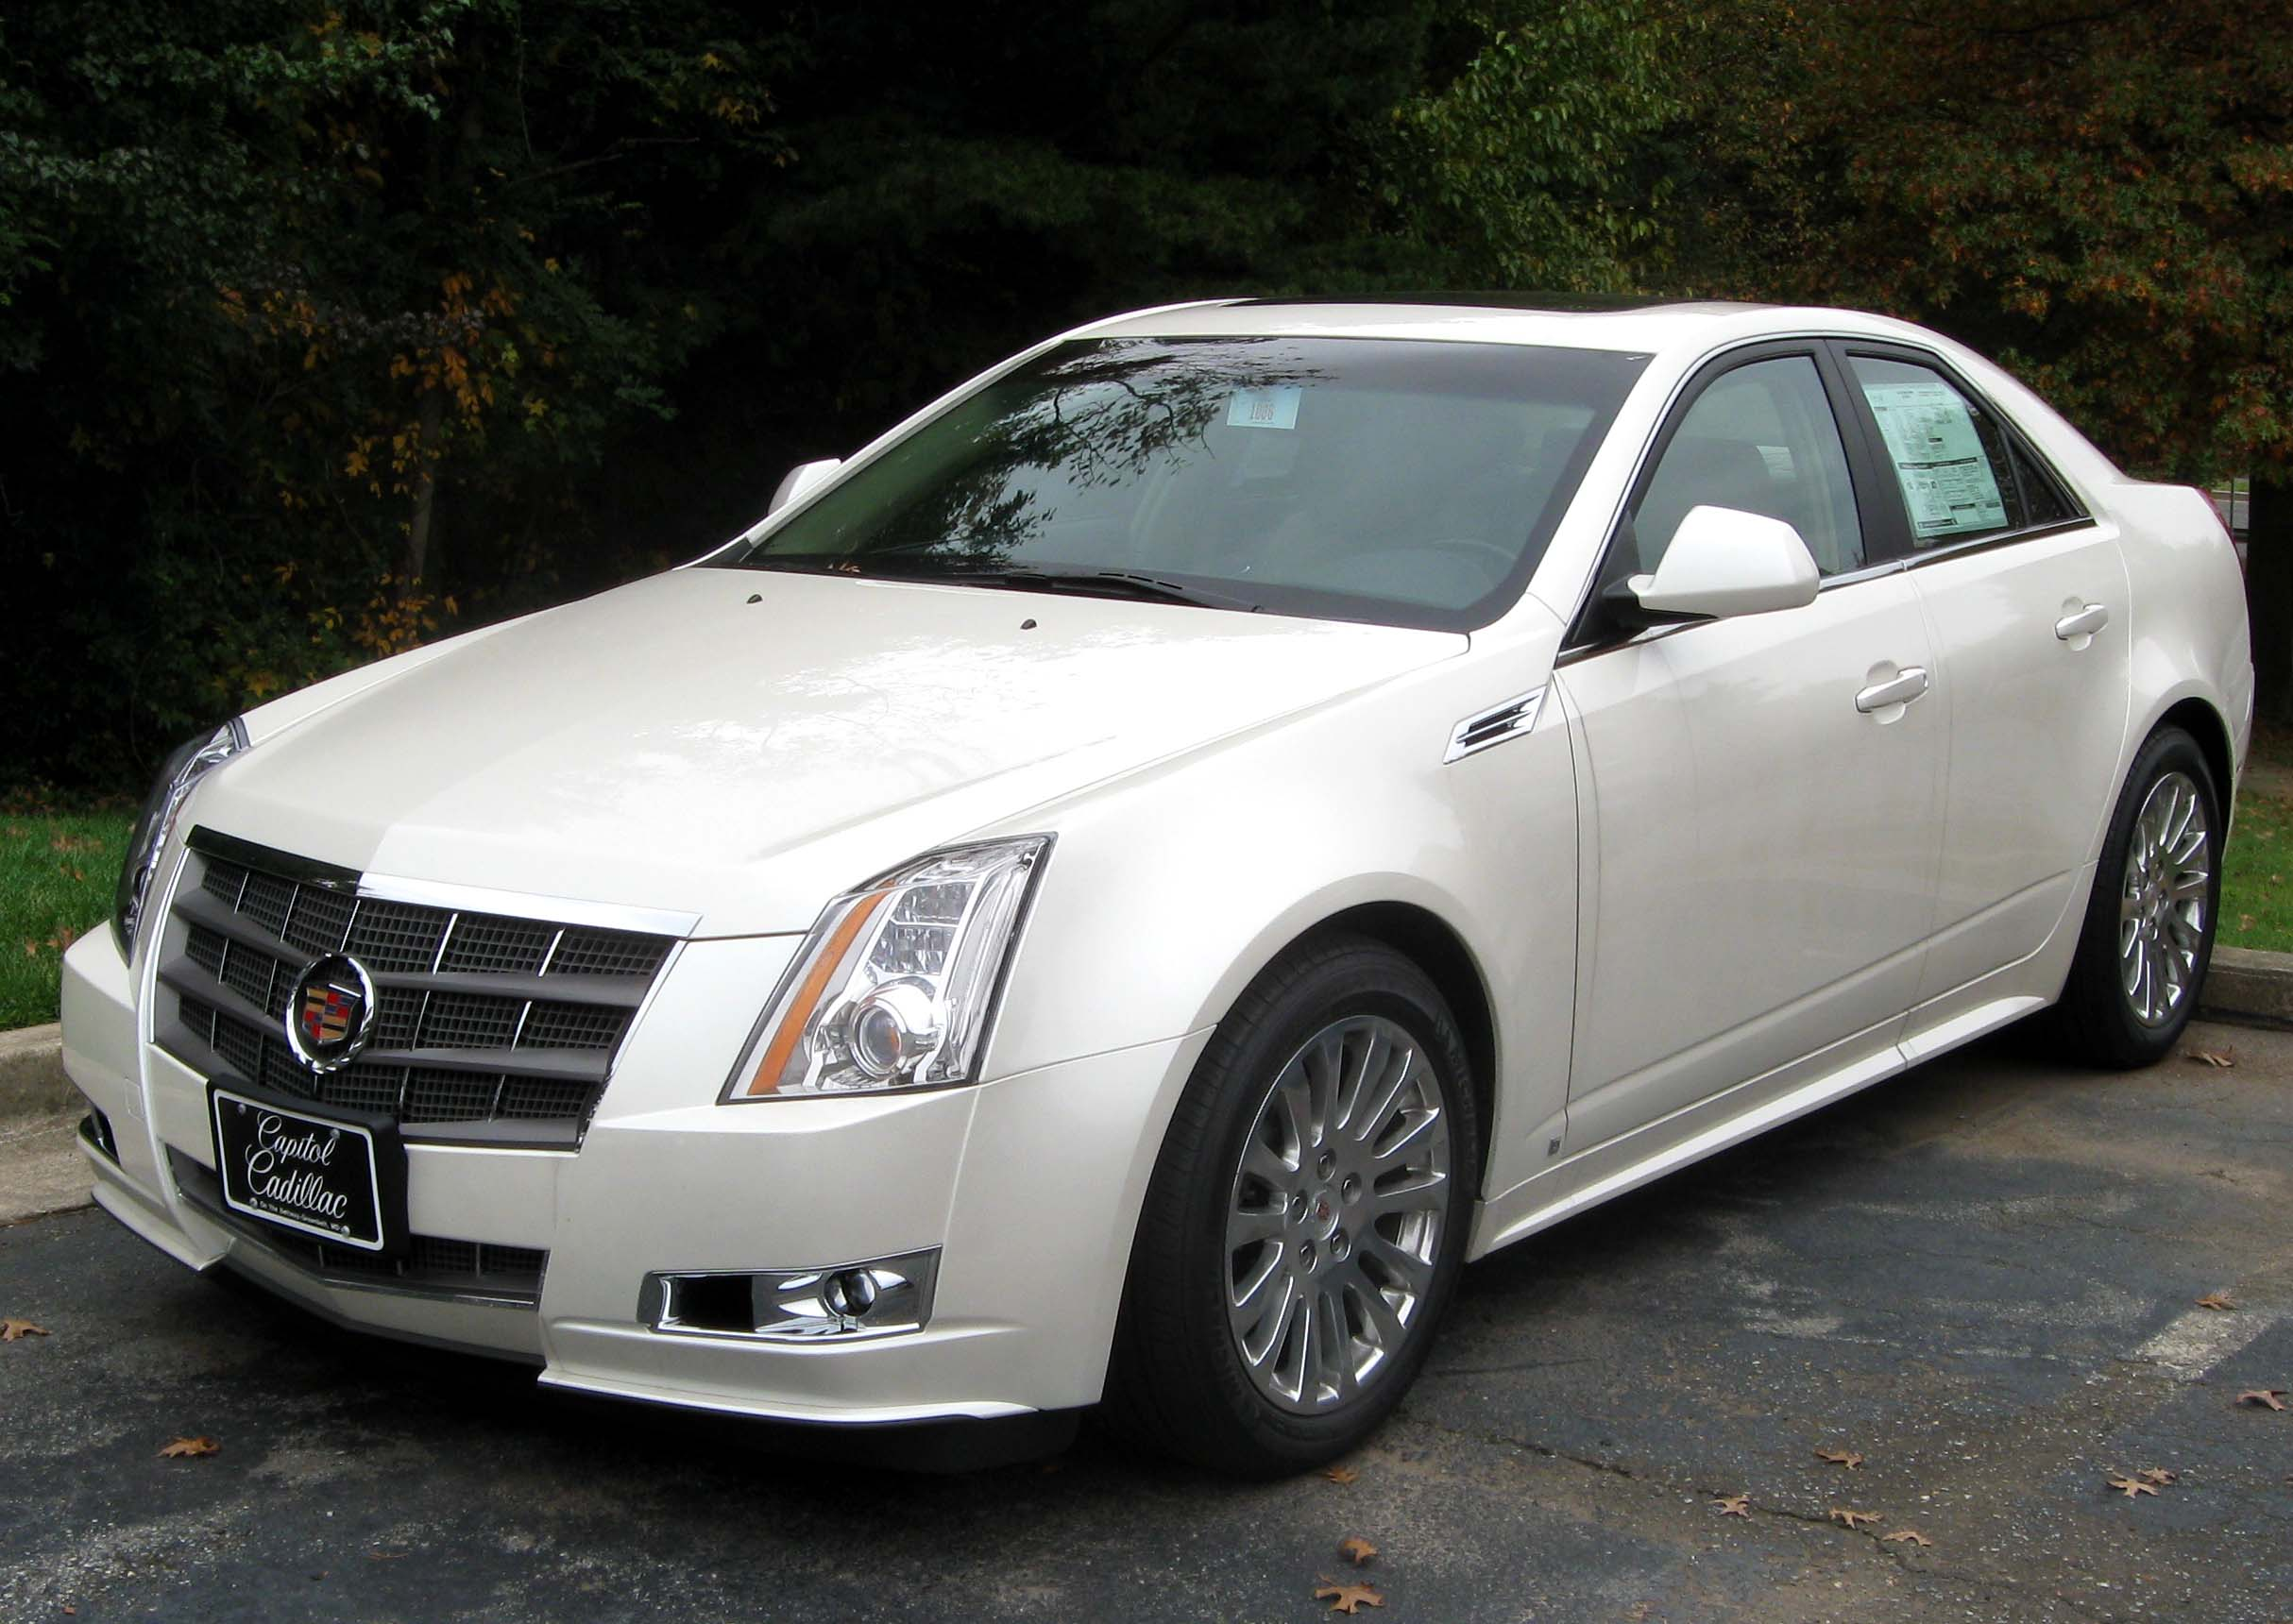 File2010 Cadillac CTS sedan  10302009jpg  Wikimedia Commons